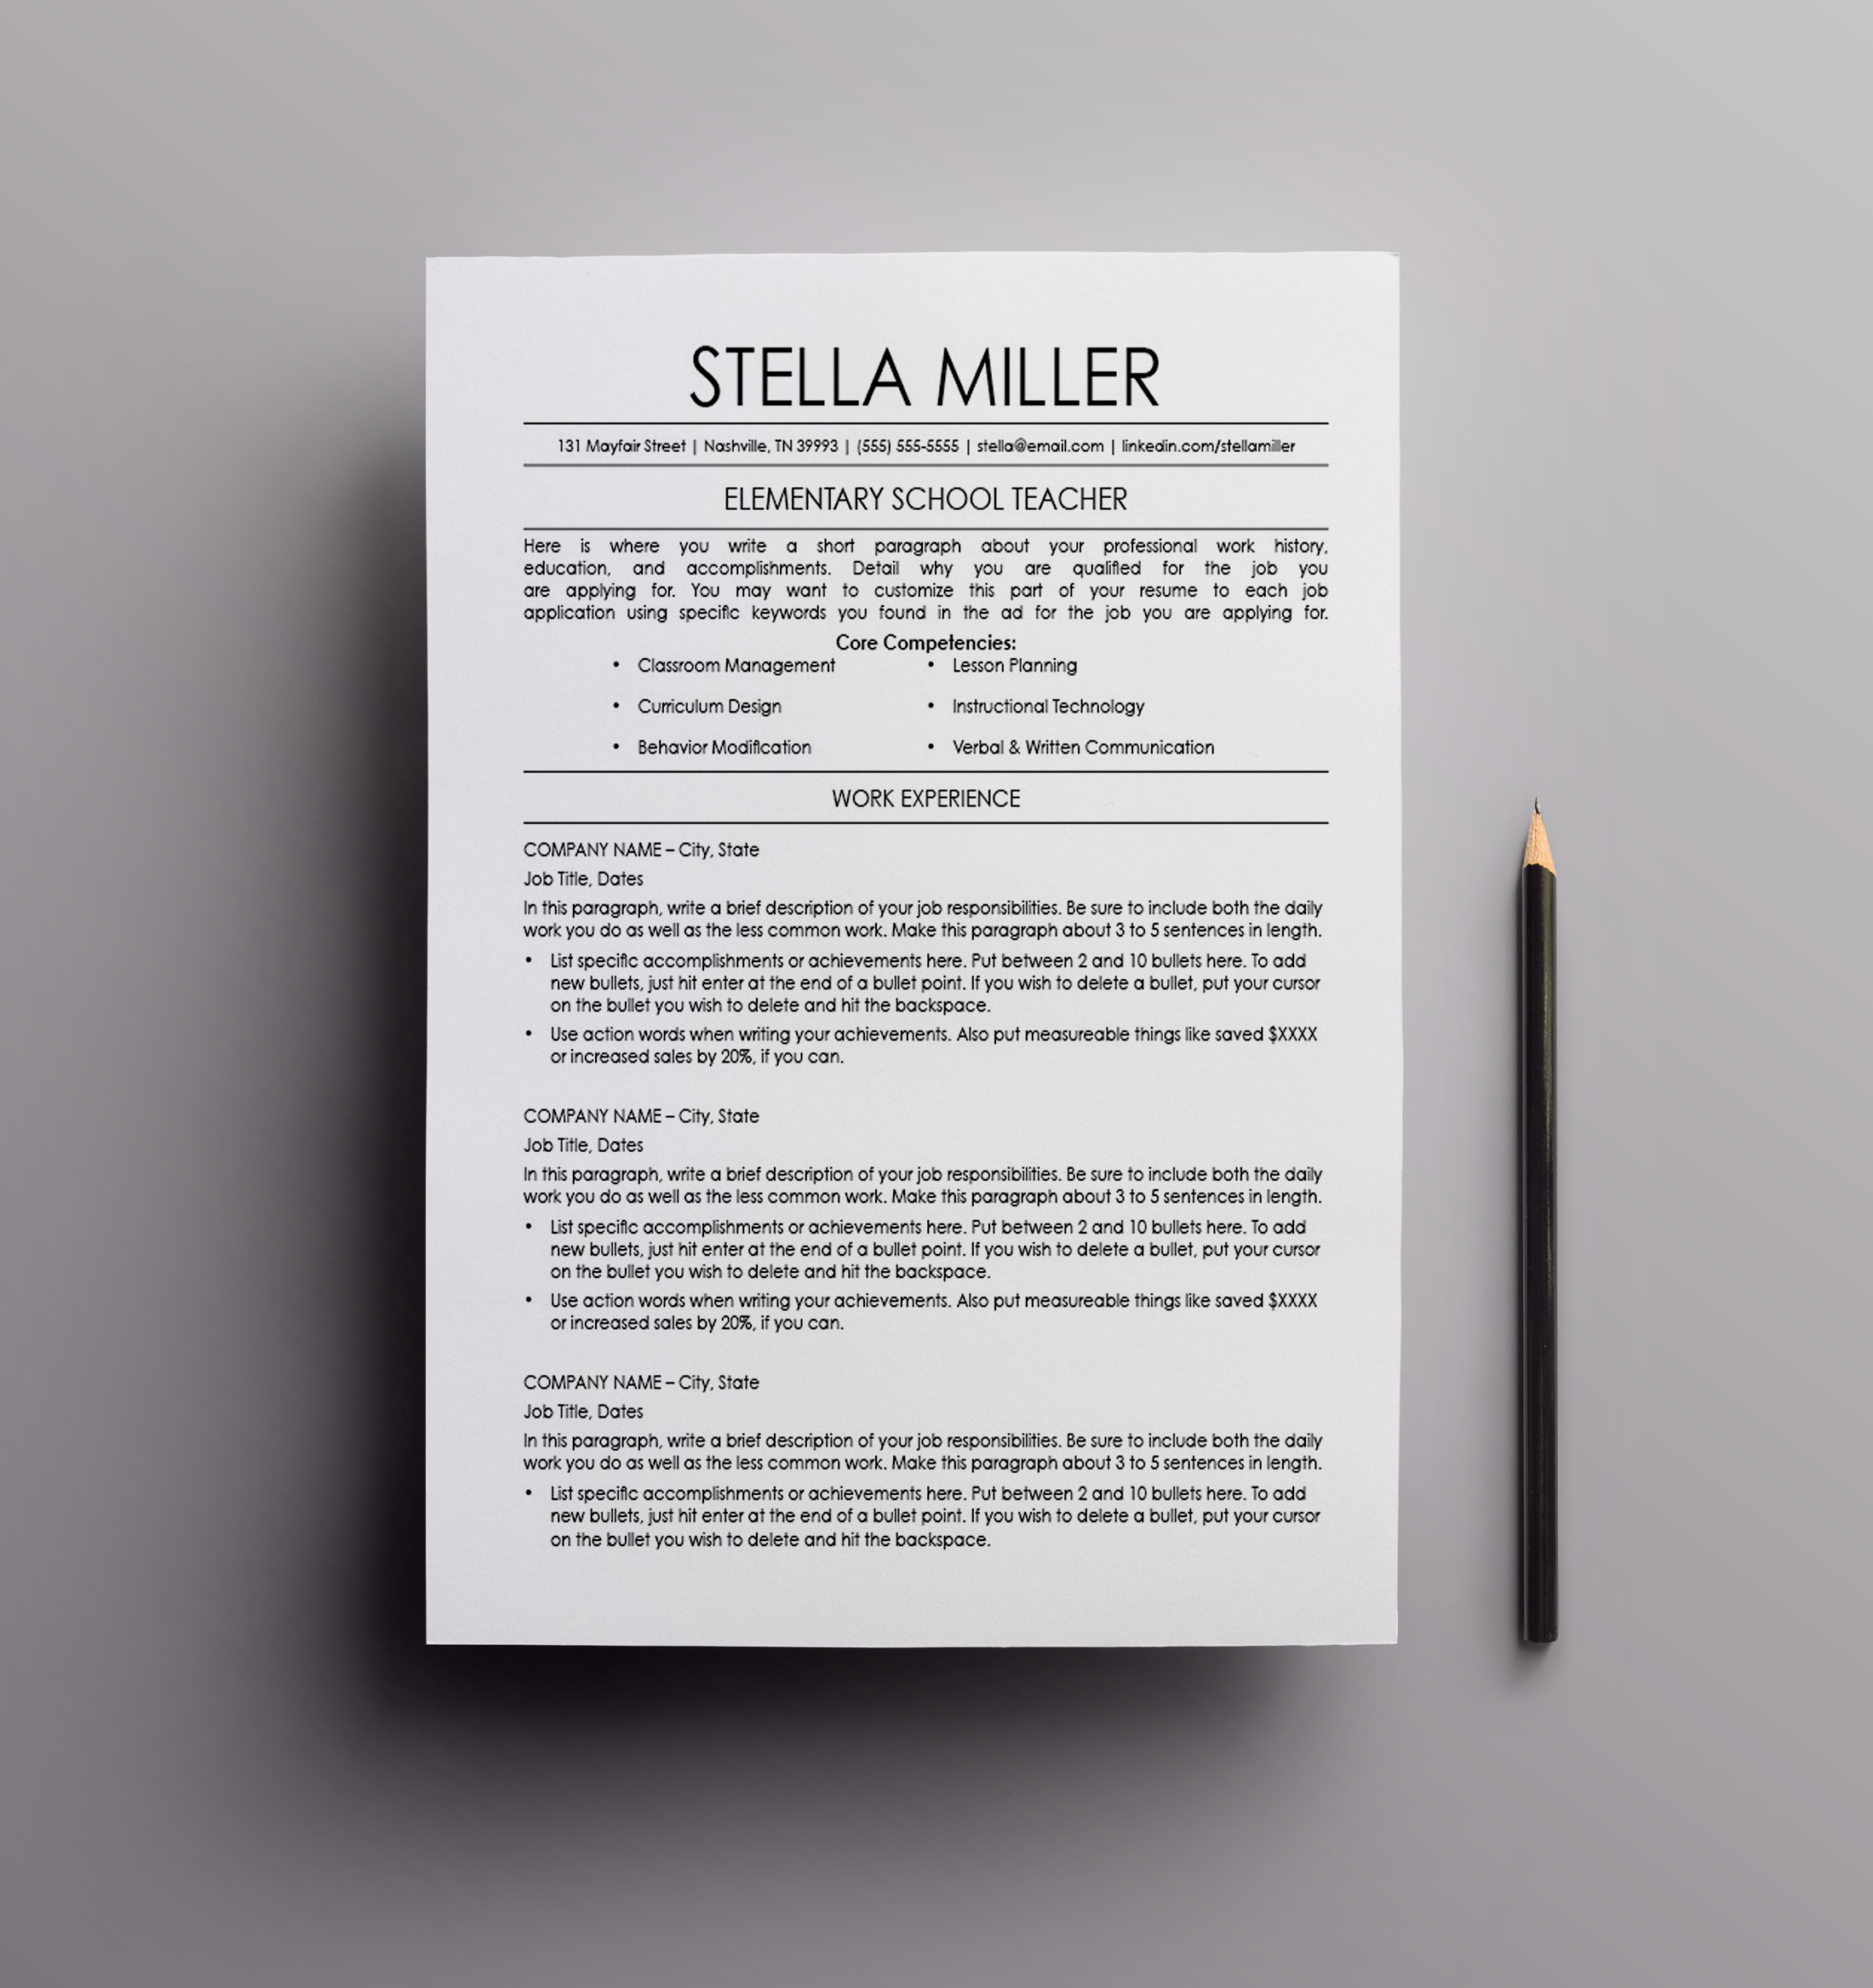 Resume Template   The Stella; Resume Design, Cv Template, Curriculum Vita  Template,